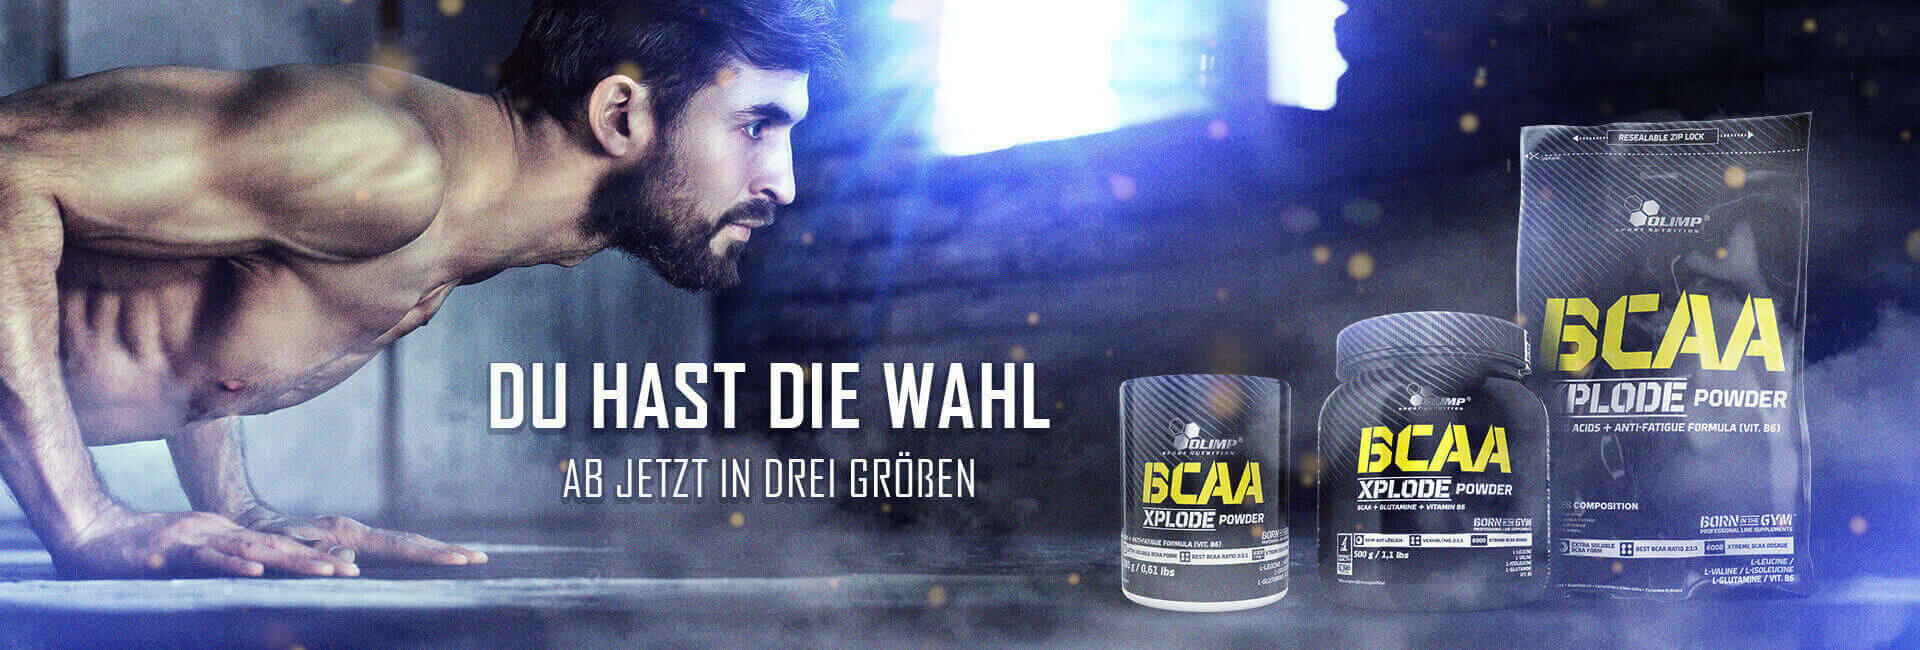 BCAA XPLODE POWDER 280g